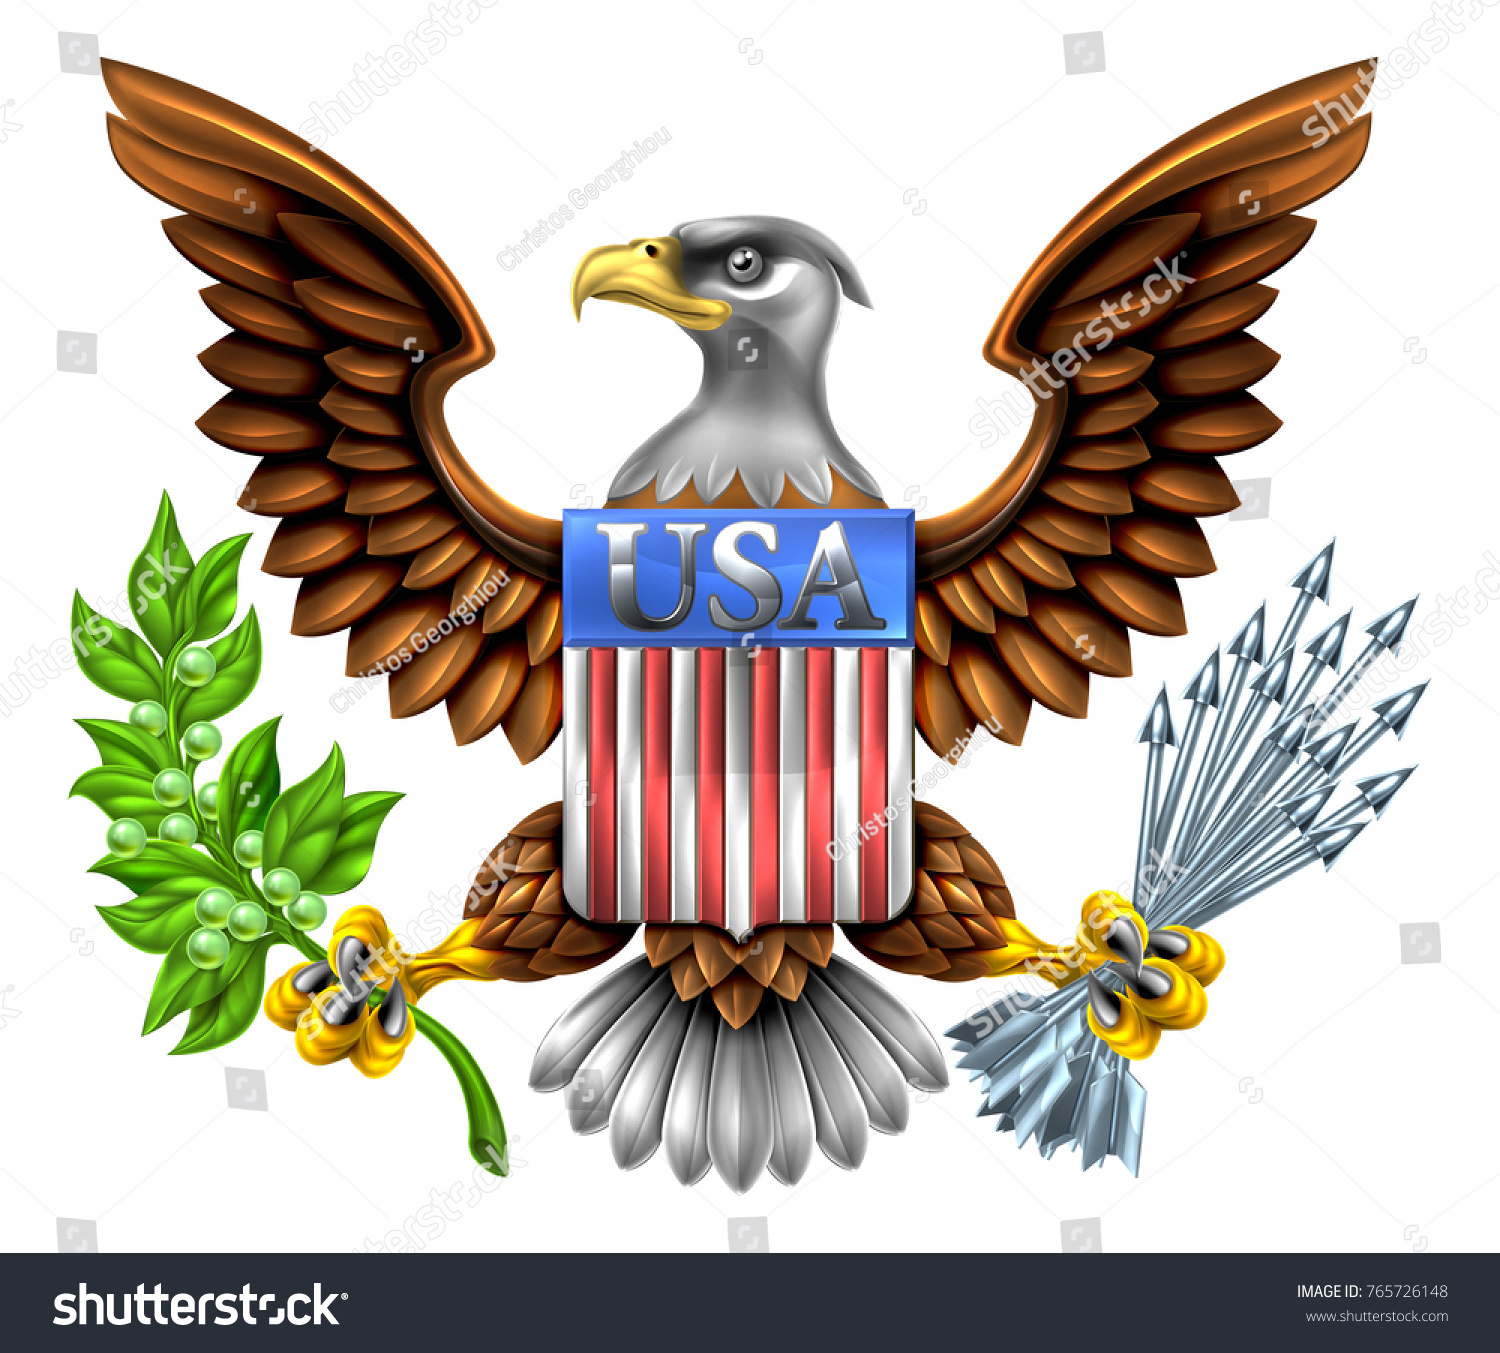 Silver Steel Metal American Eagle Design With Bald Eagle Like That